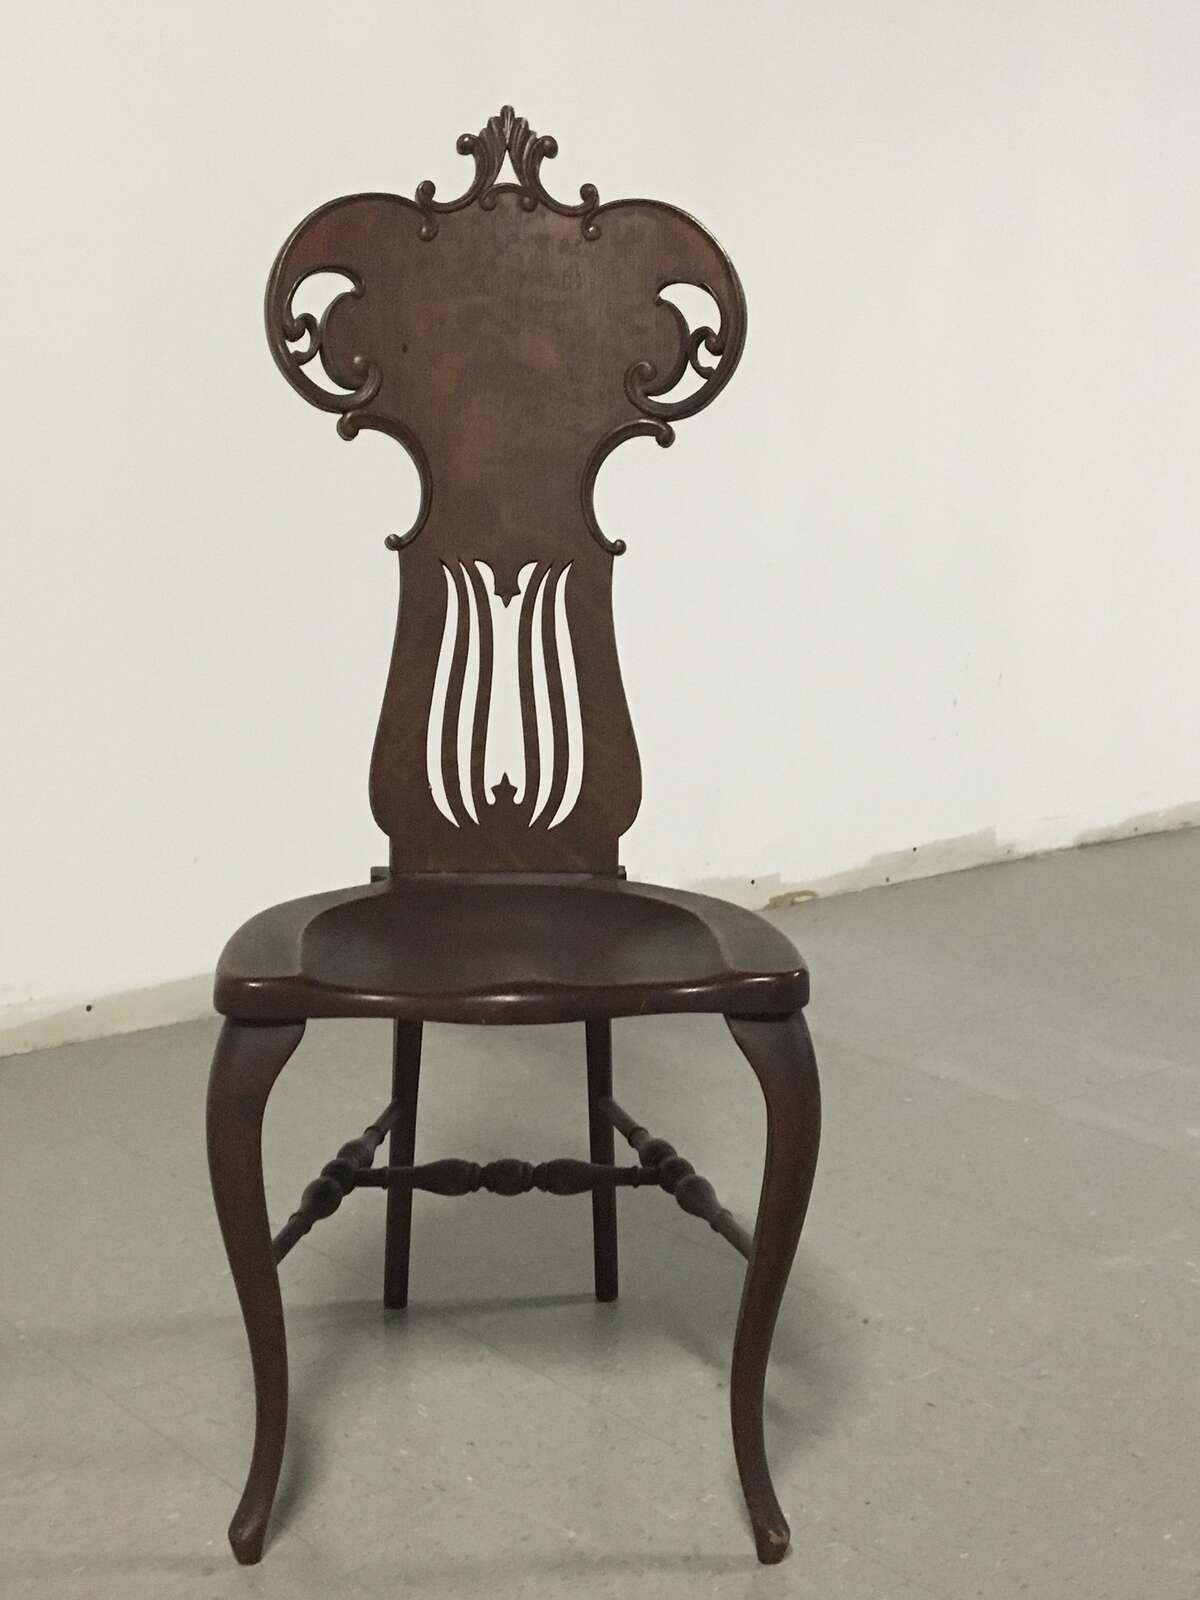 There's a cultural shift in antiques collecting. Today's buyers rarely want what was hot a generation or two ago. Victorian chairs like this one might seem detailed and beautiful, but would likely gather dust in an antiques store or at auction.